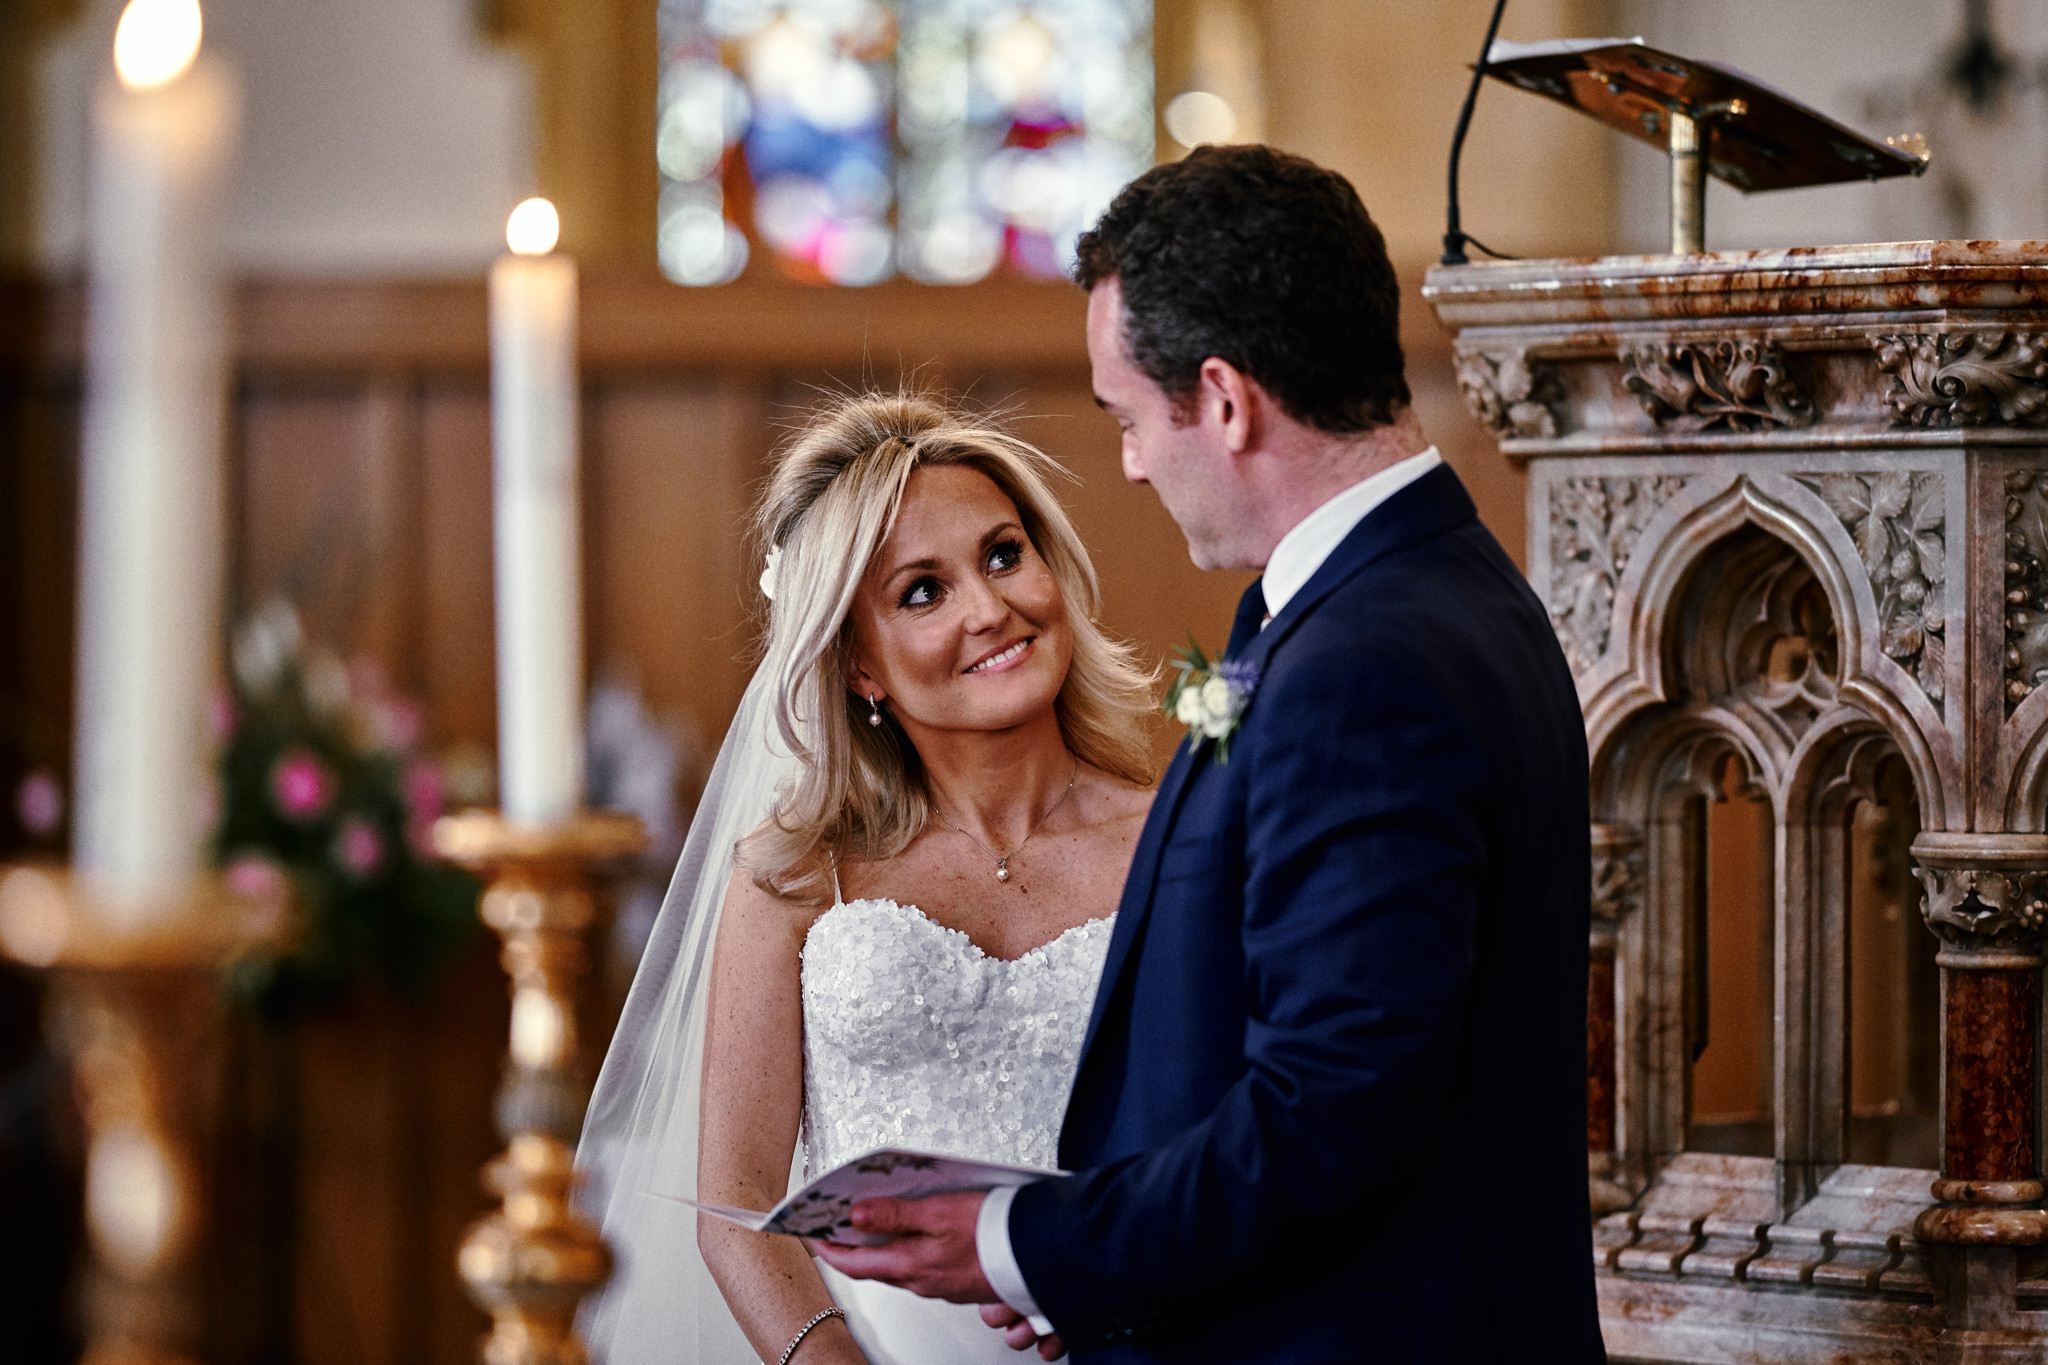 Bride and Groom during a wedding service at St Mary's Church, Henley-on-Thames